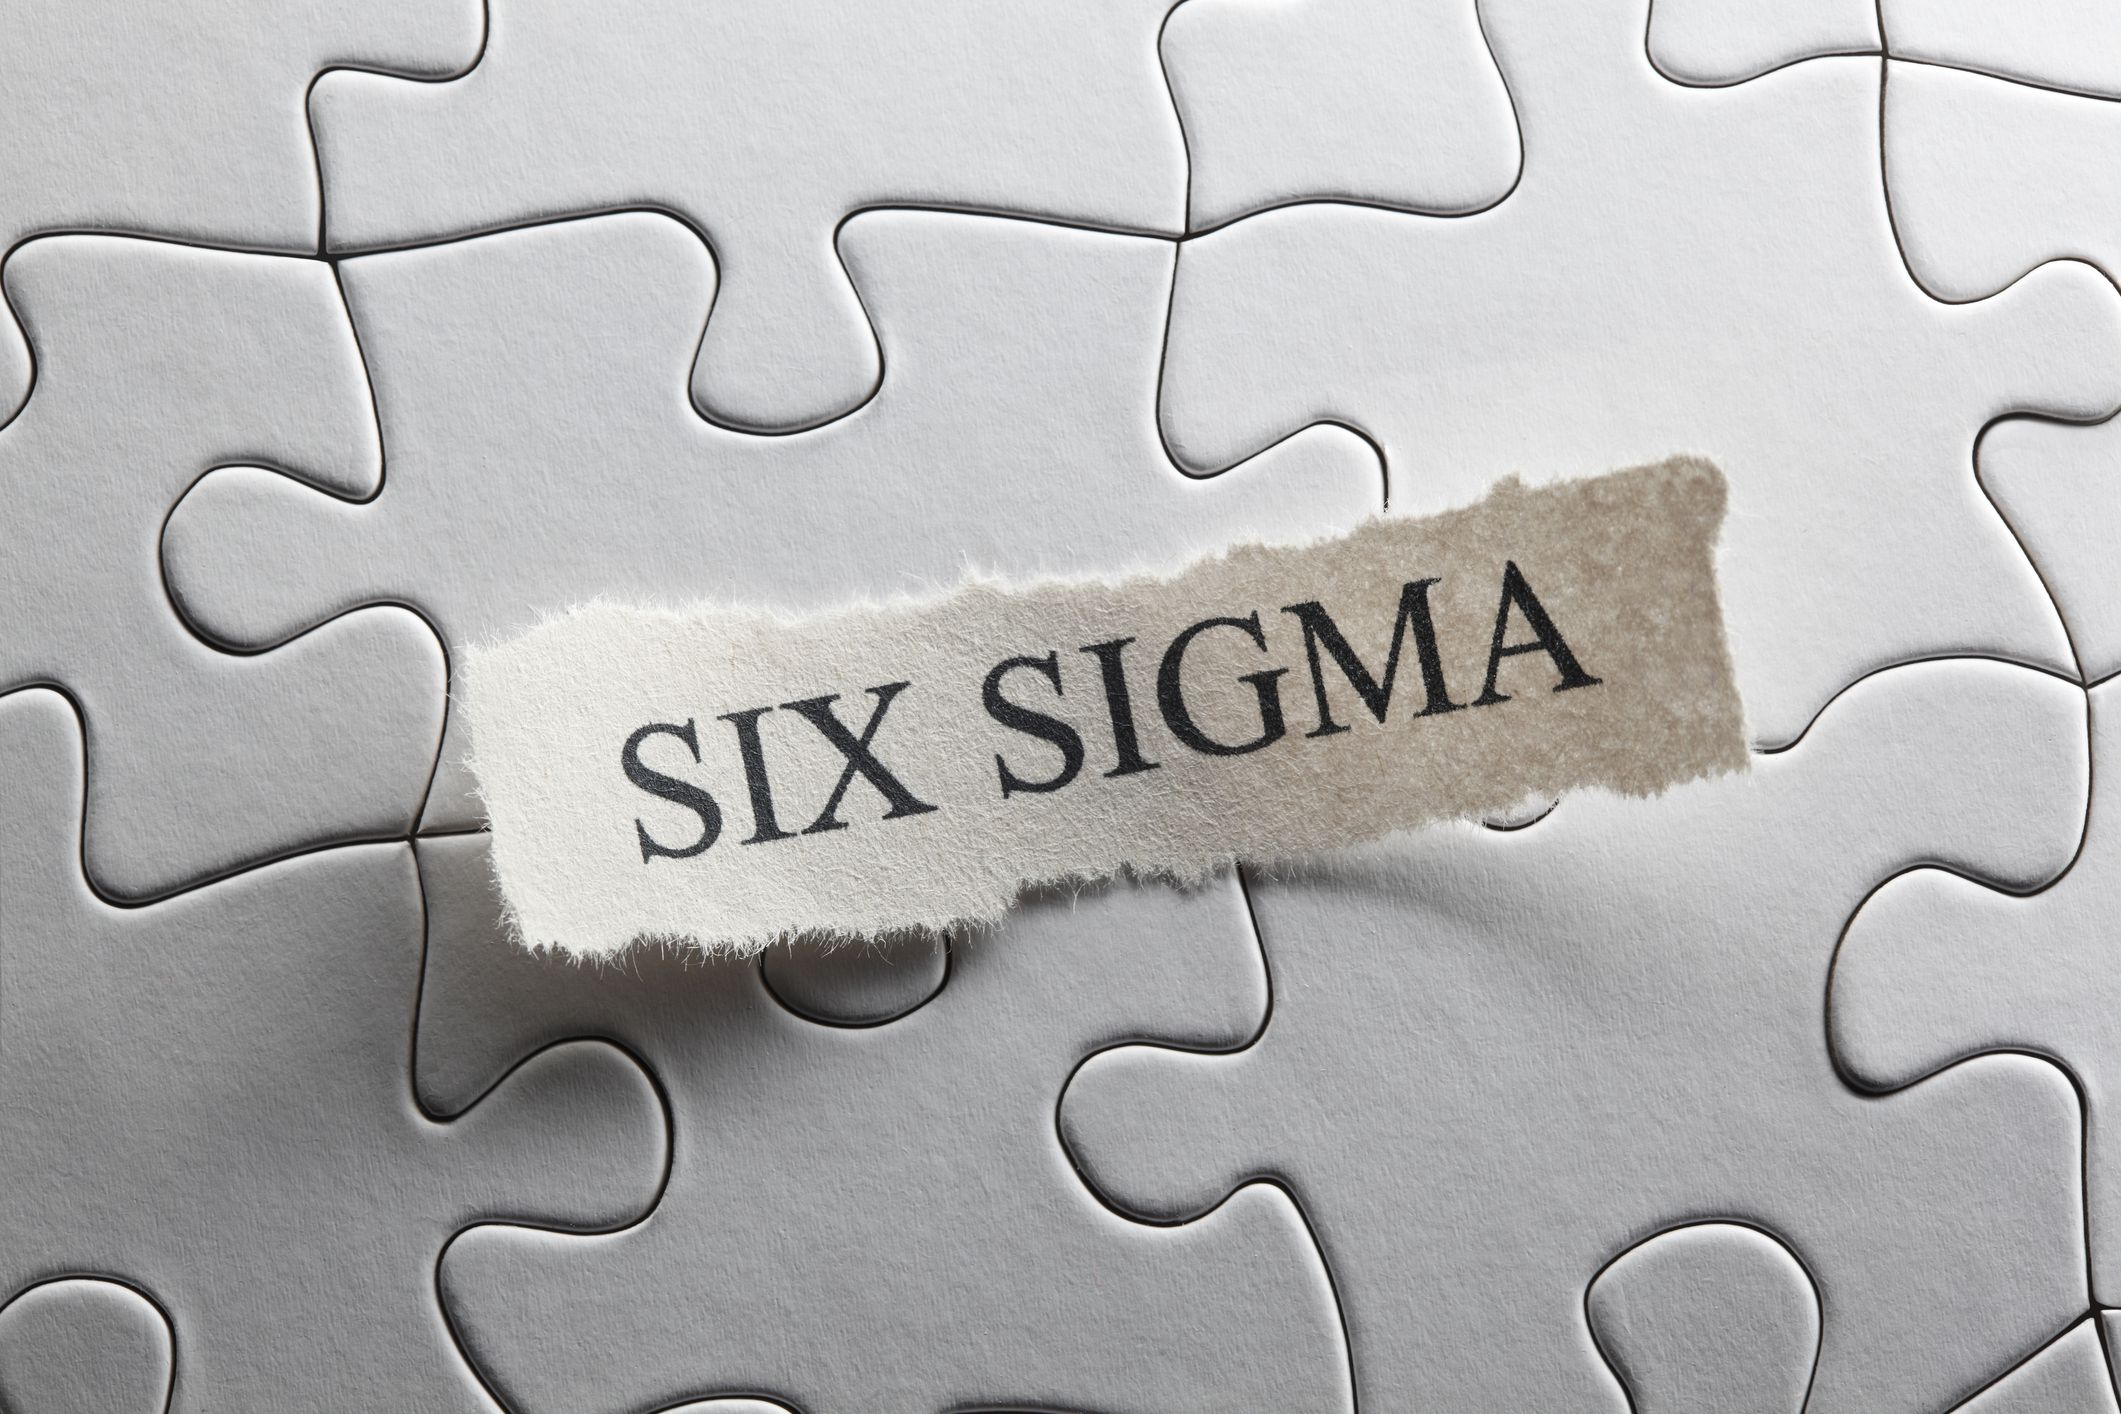 Free six sigma courses supply chain optimization six sigma terminology xflitez Image collections